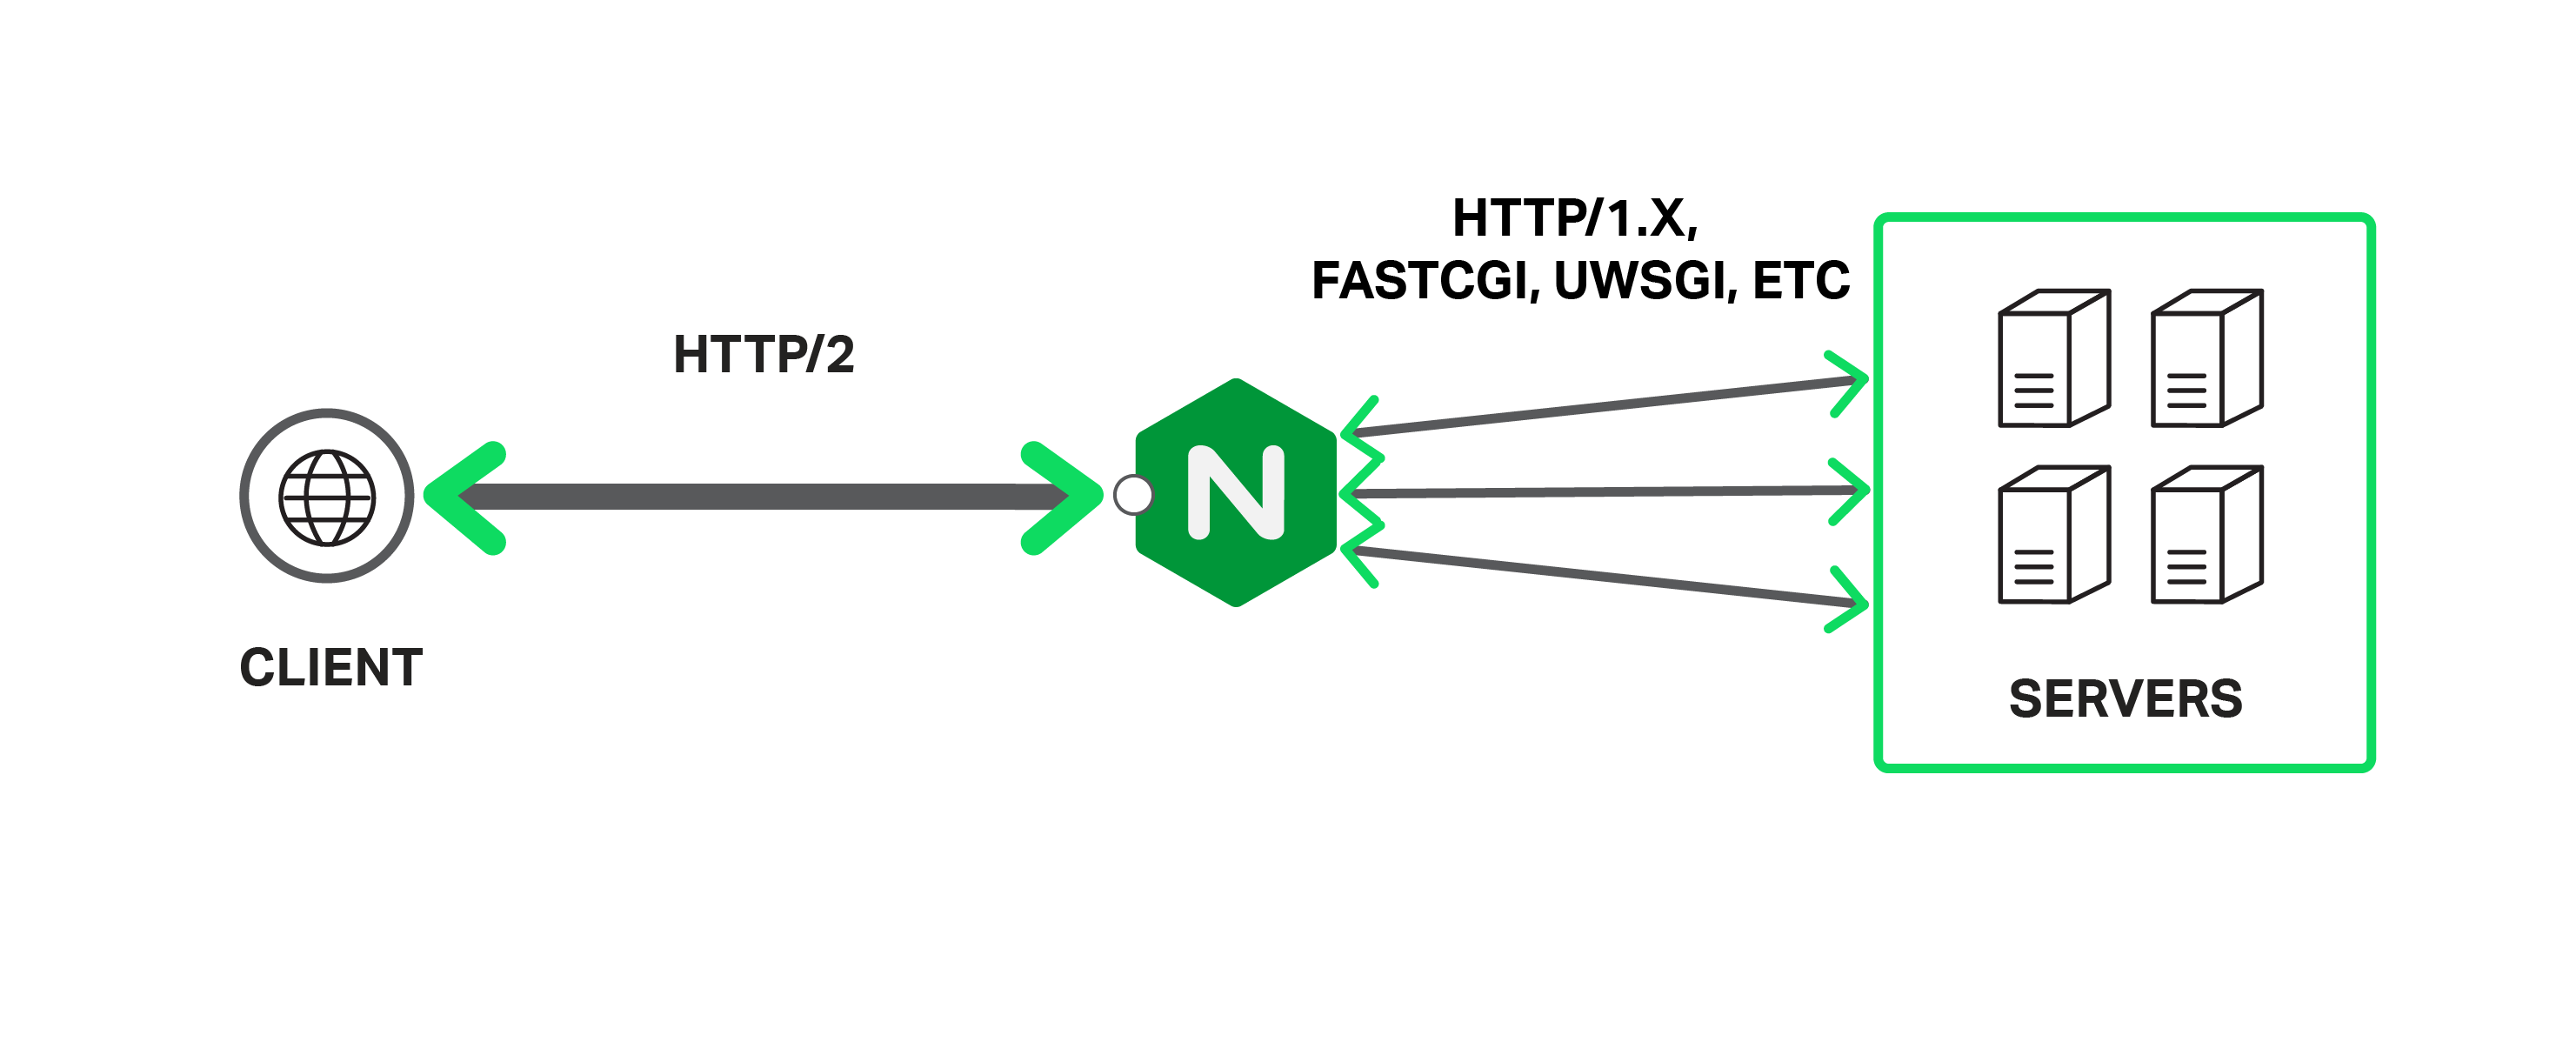 Nginx revers proxy https - Admin - Форум - Linux org ru